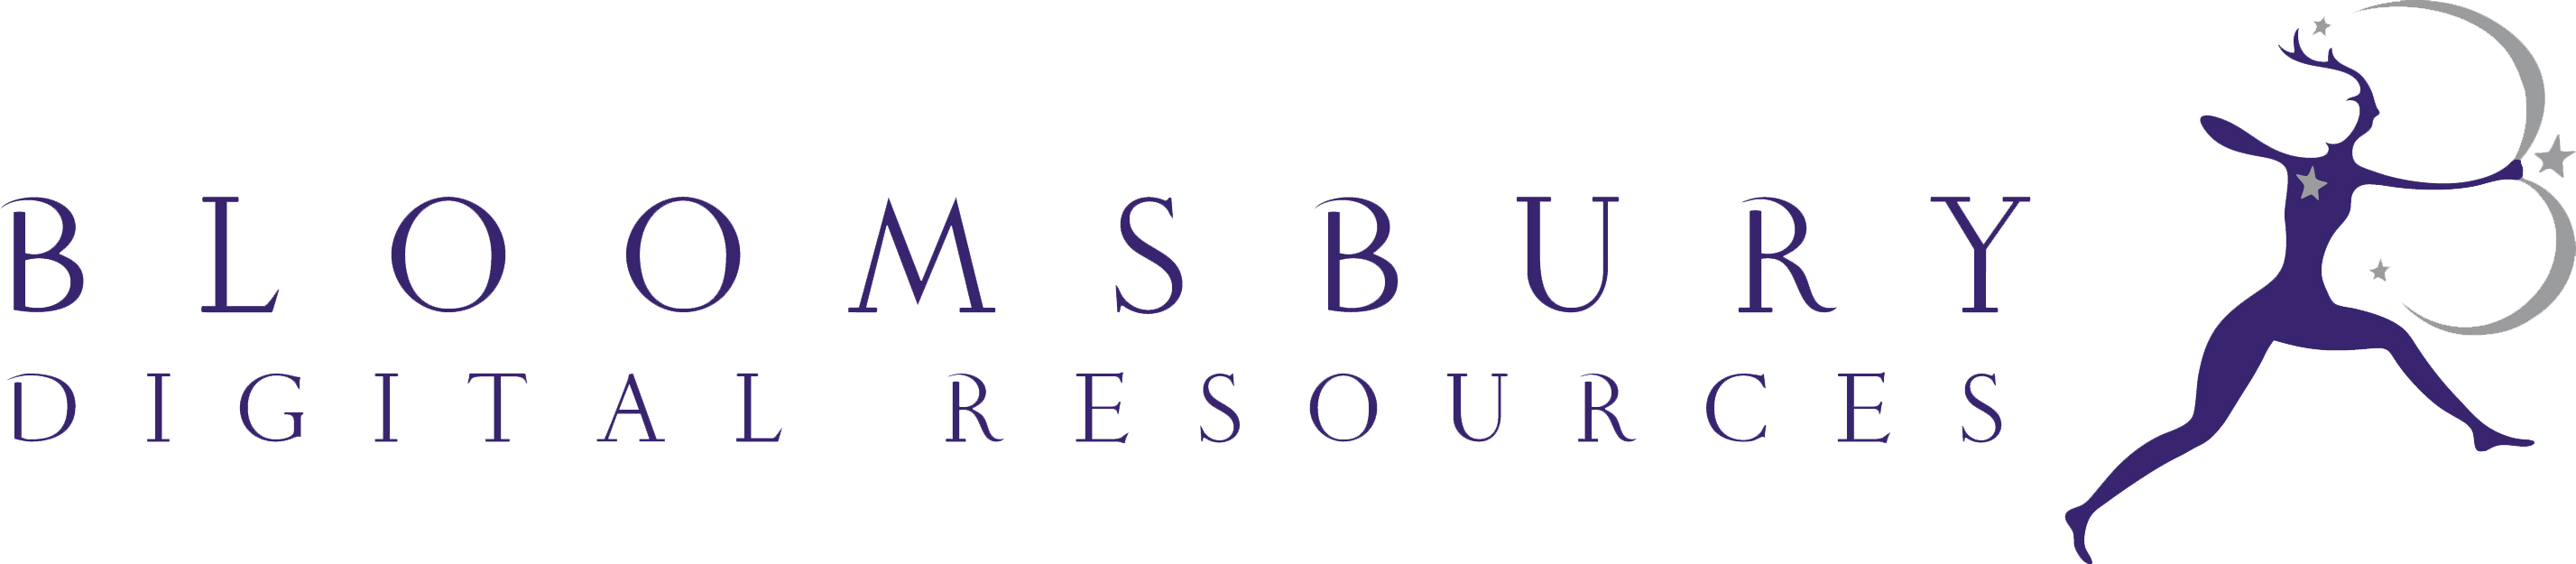 Bloomsbury Digital Resources PNG